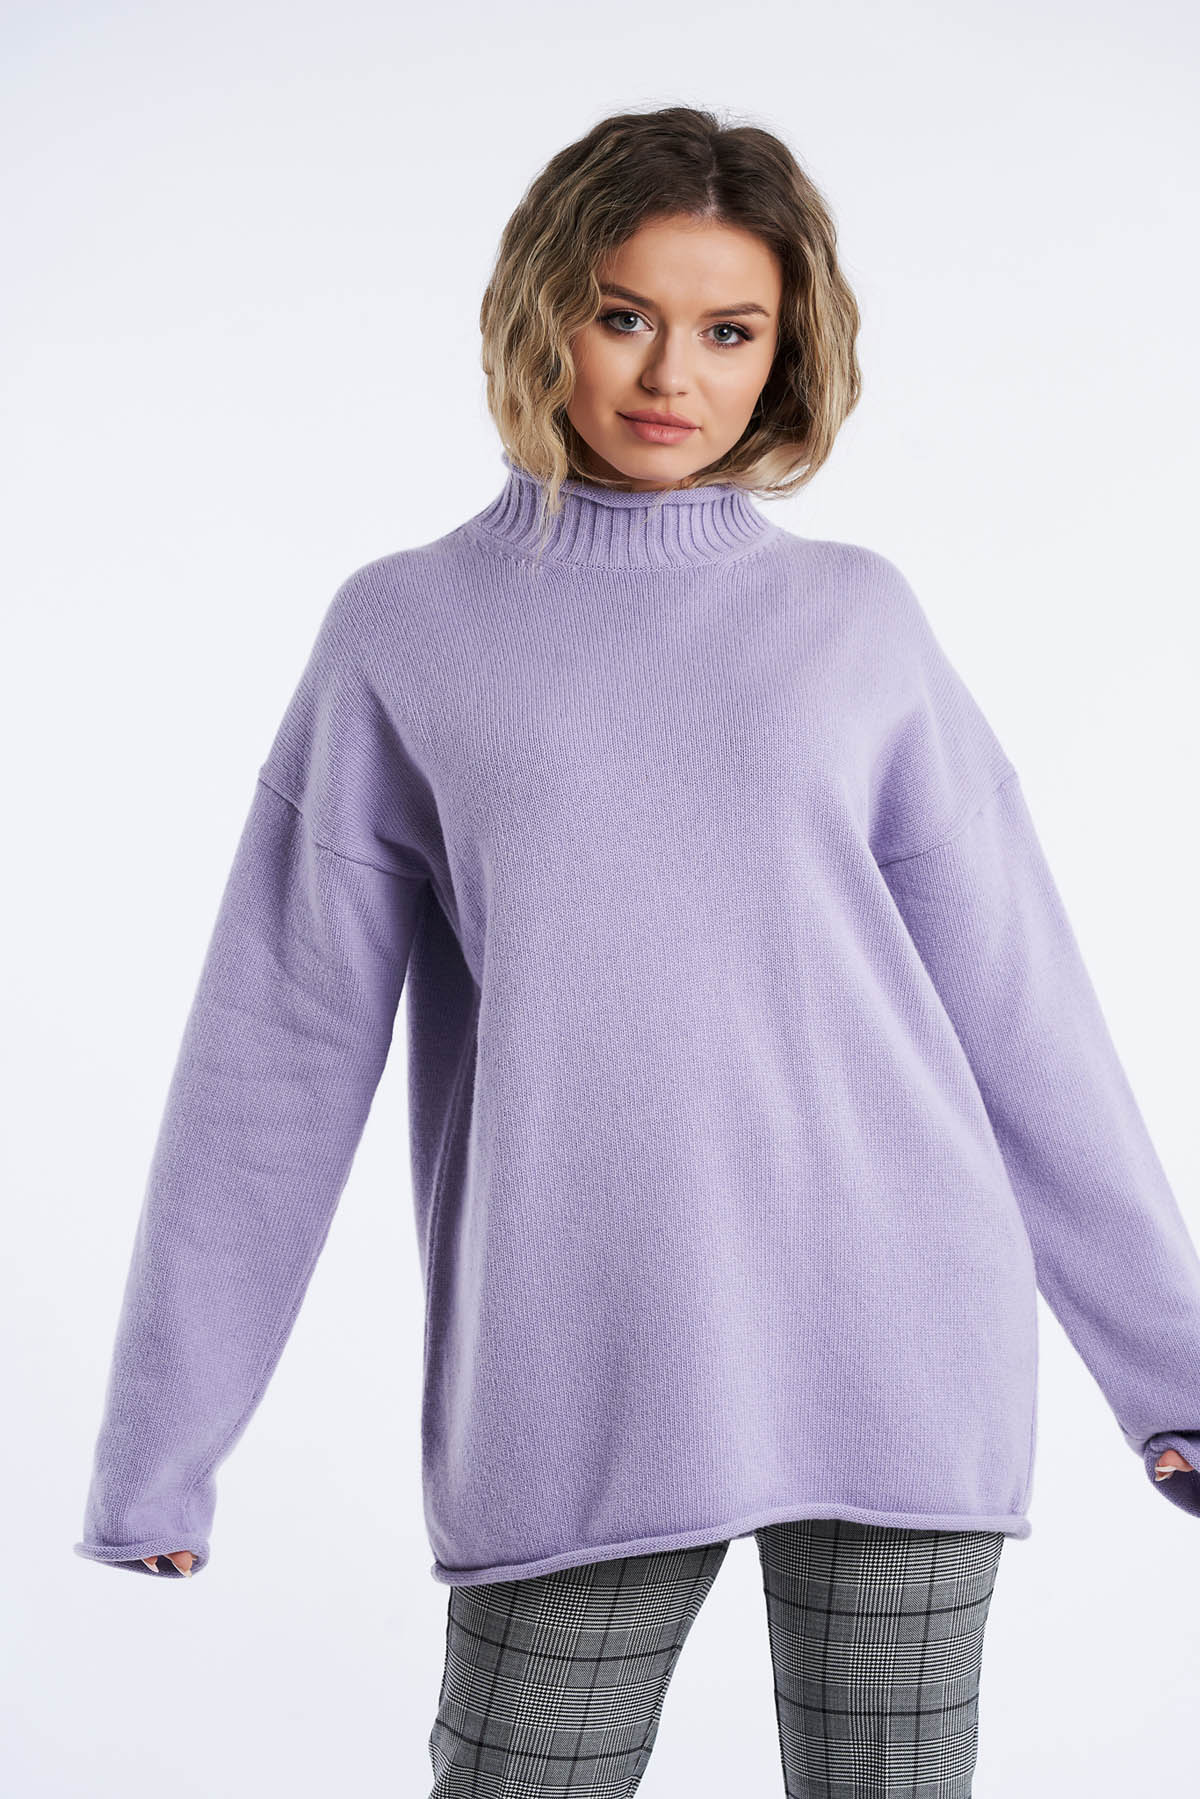 Pulover din tricot, Mov (6)